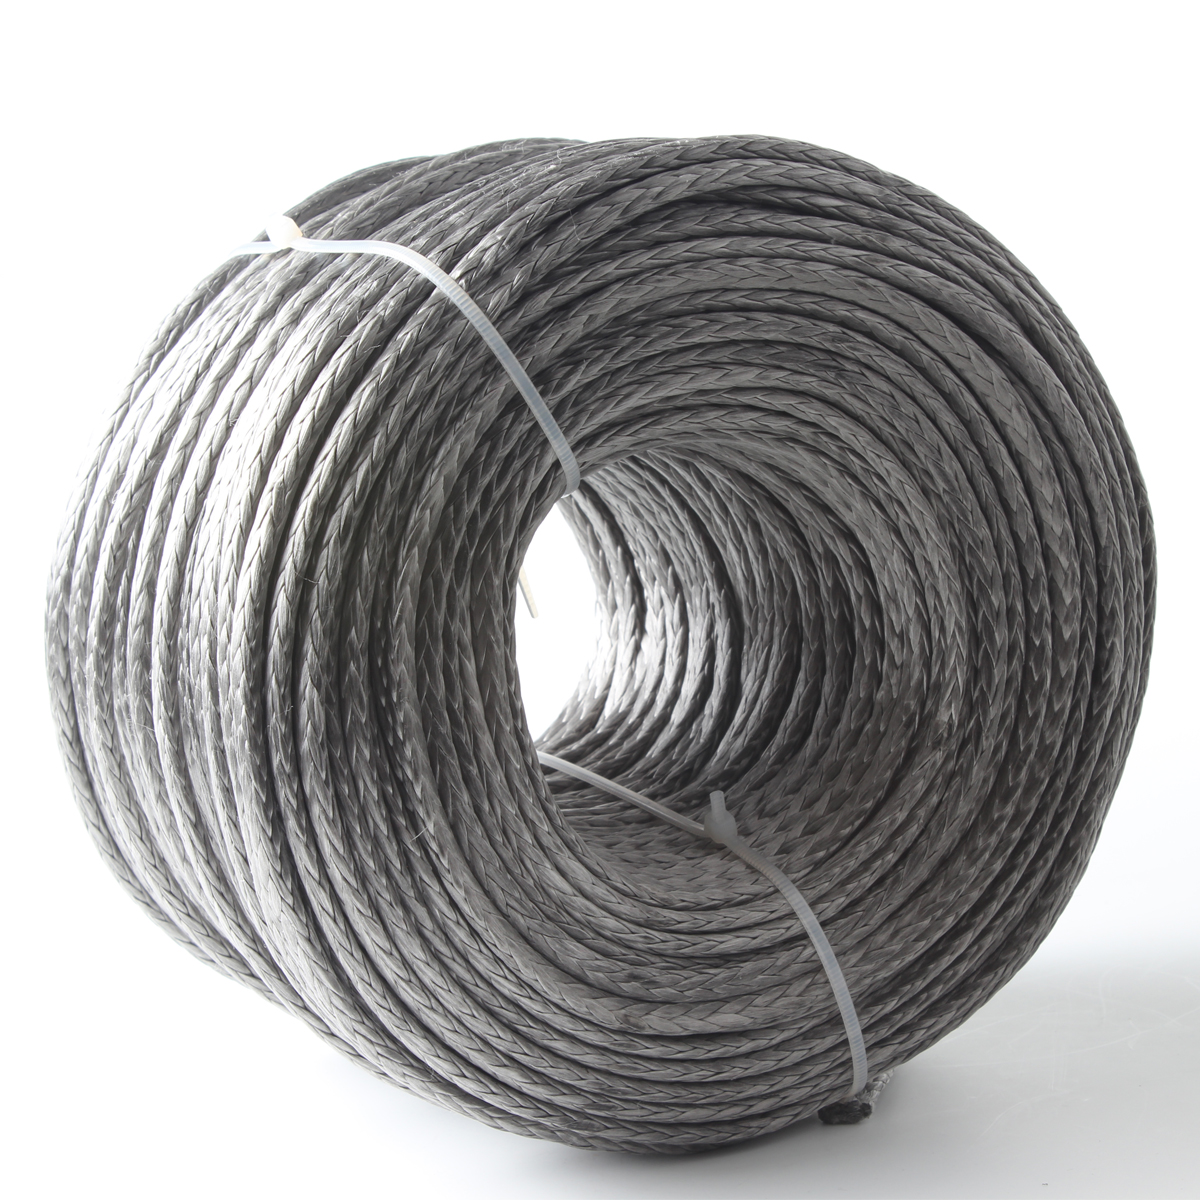 4mm UHMWPE Braided Rudder Line For Sailboat